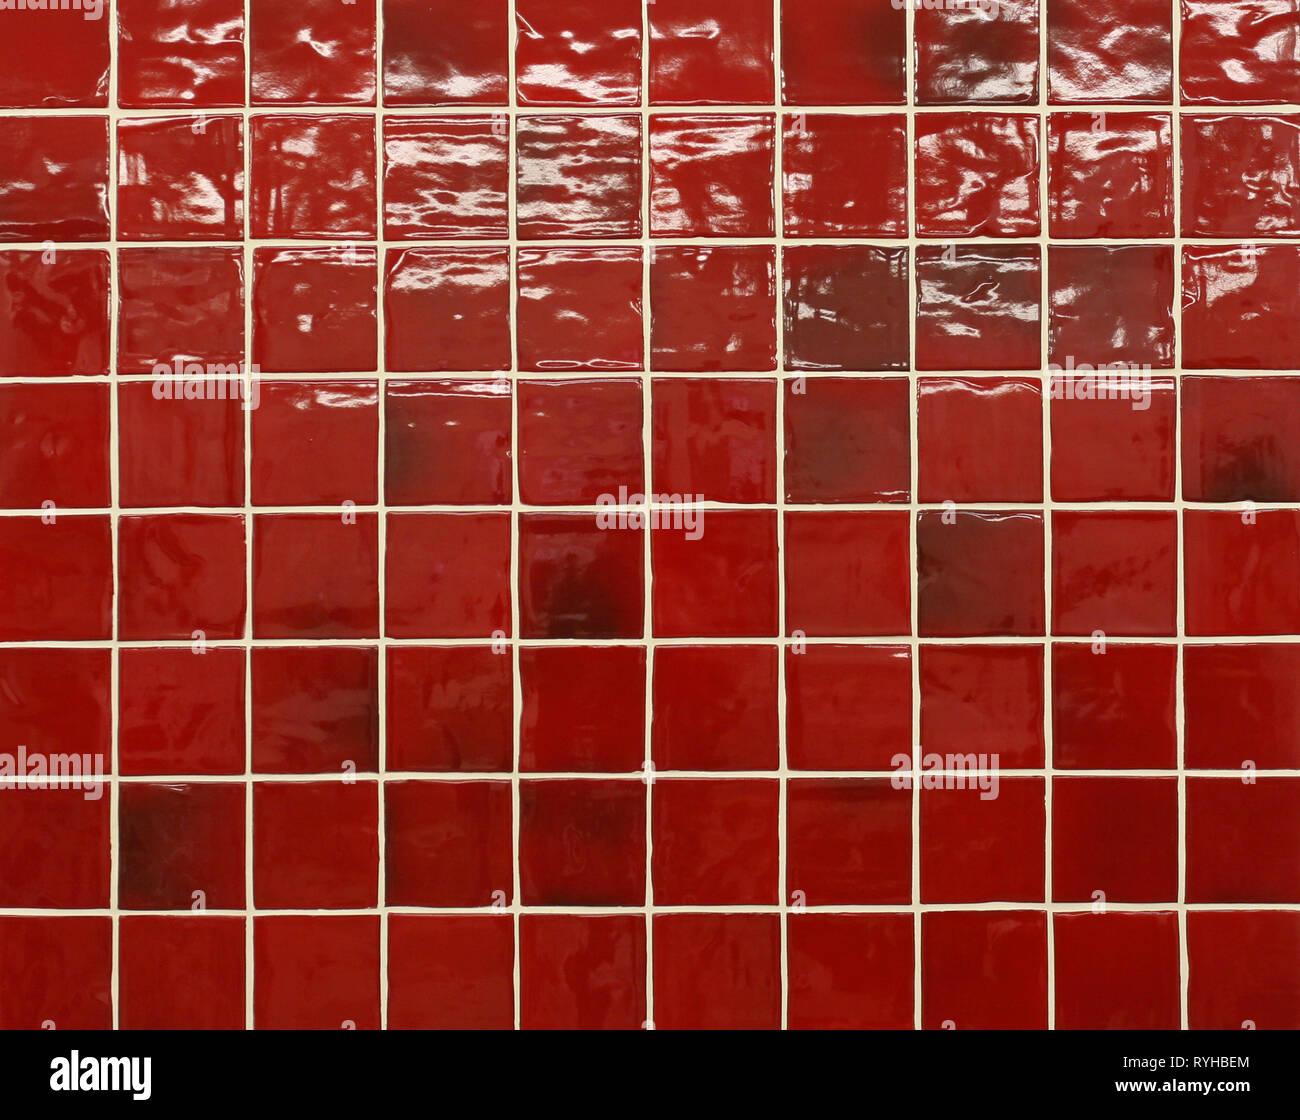 https www alamy com glazed red wall tiles with white grouting image240712716 html